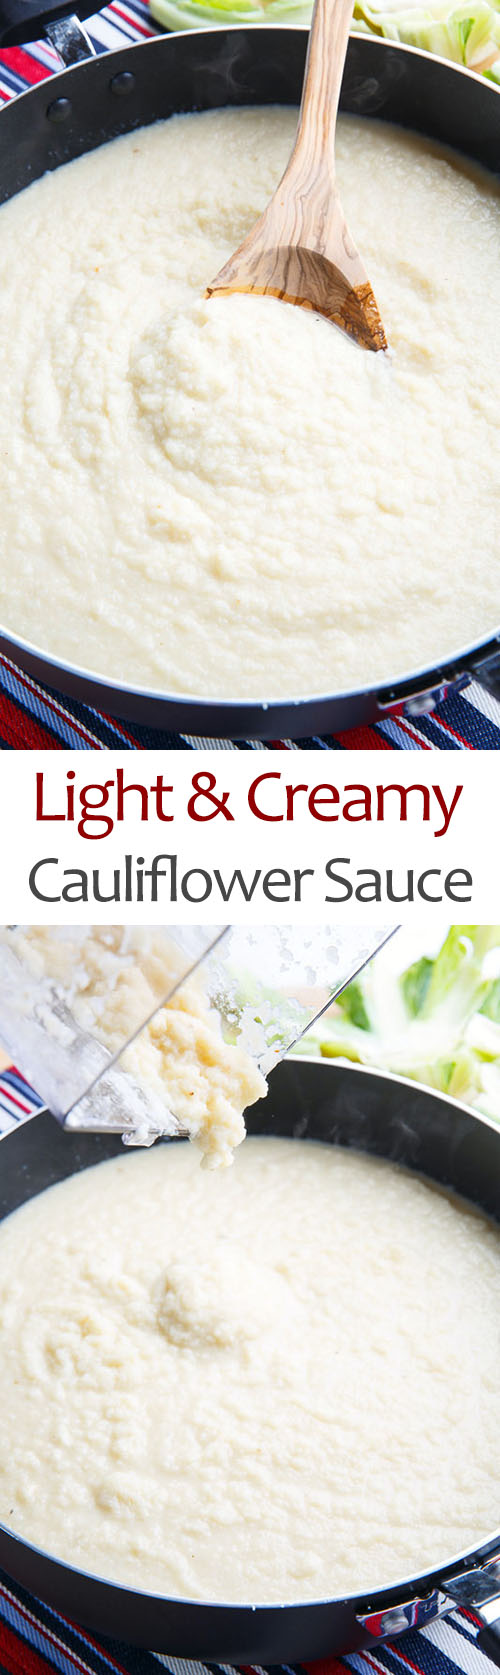 Light and Creamy Cauliflower Sauce